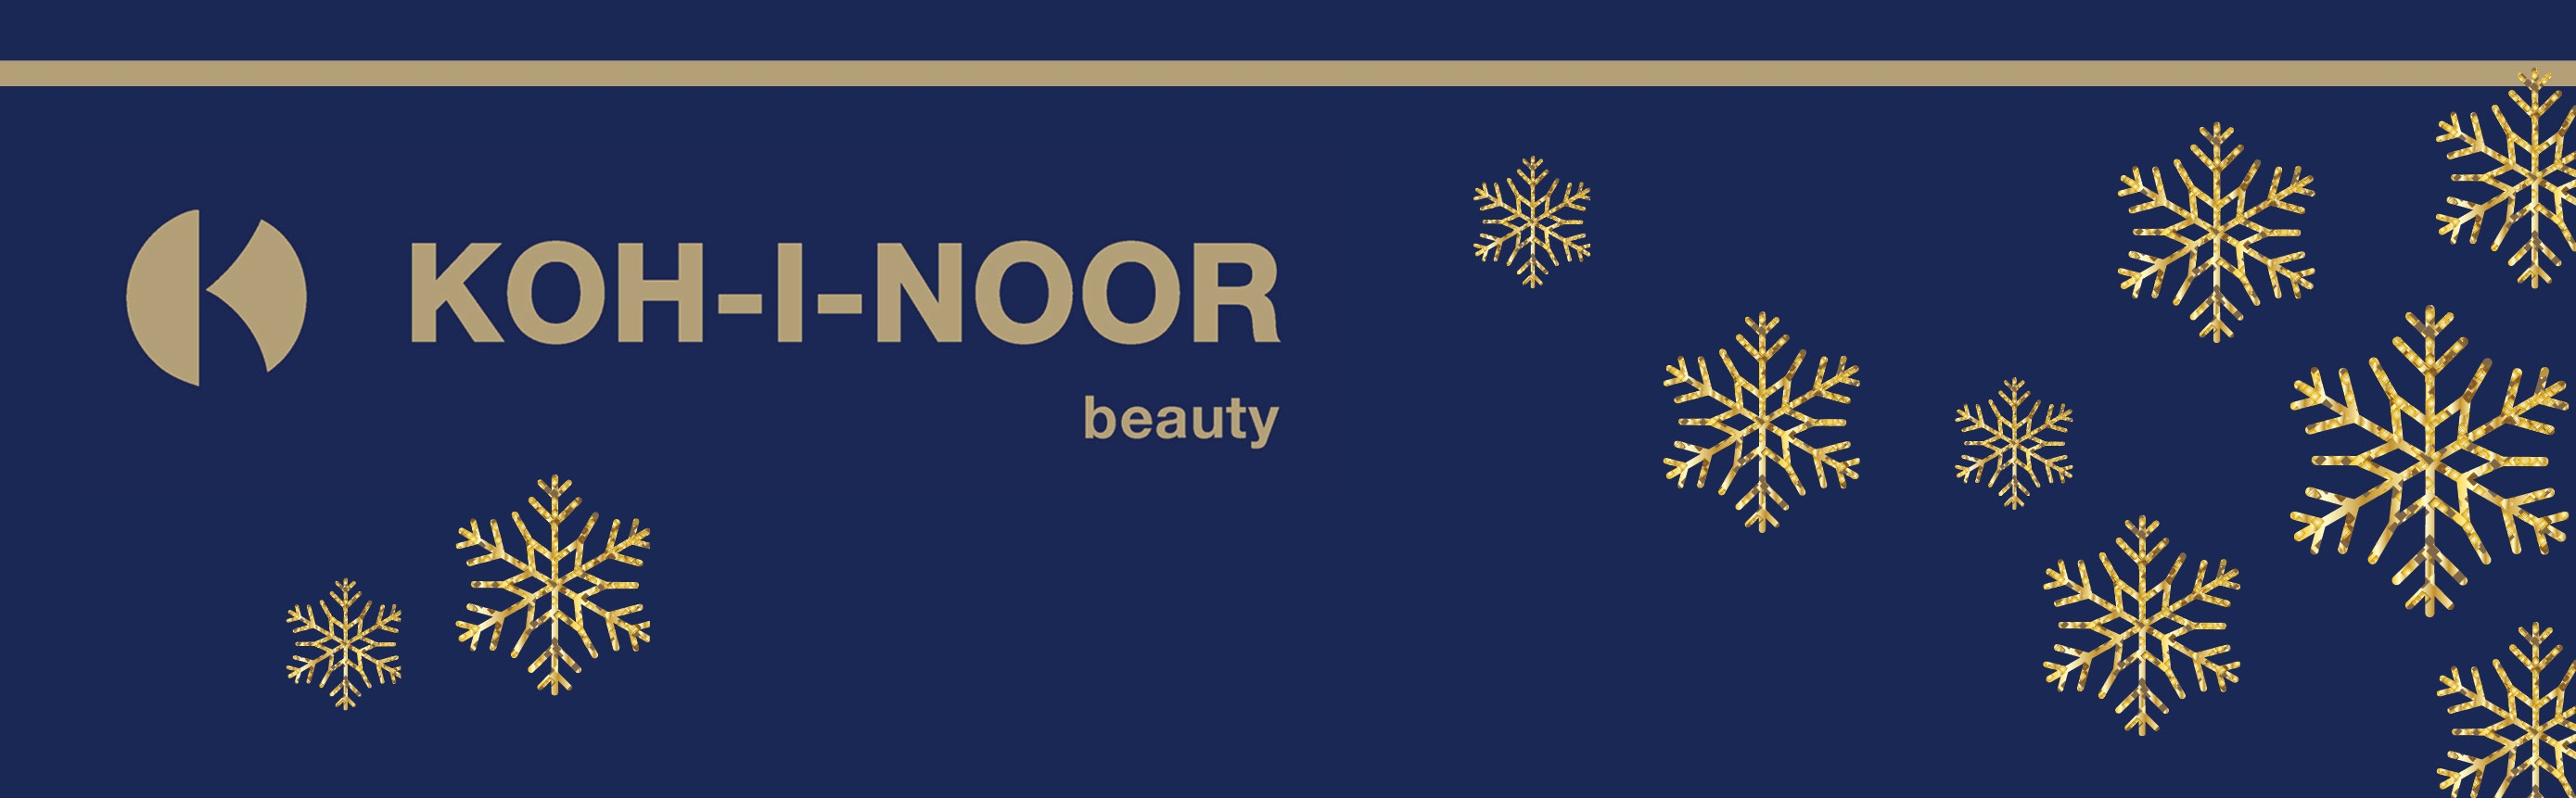 Koh-I-Nor Beauty web banner_2000x620 with snowflakes